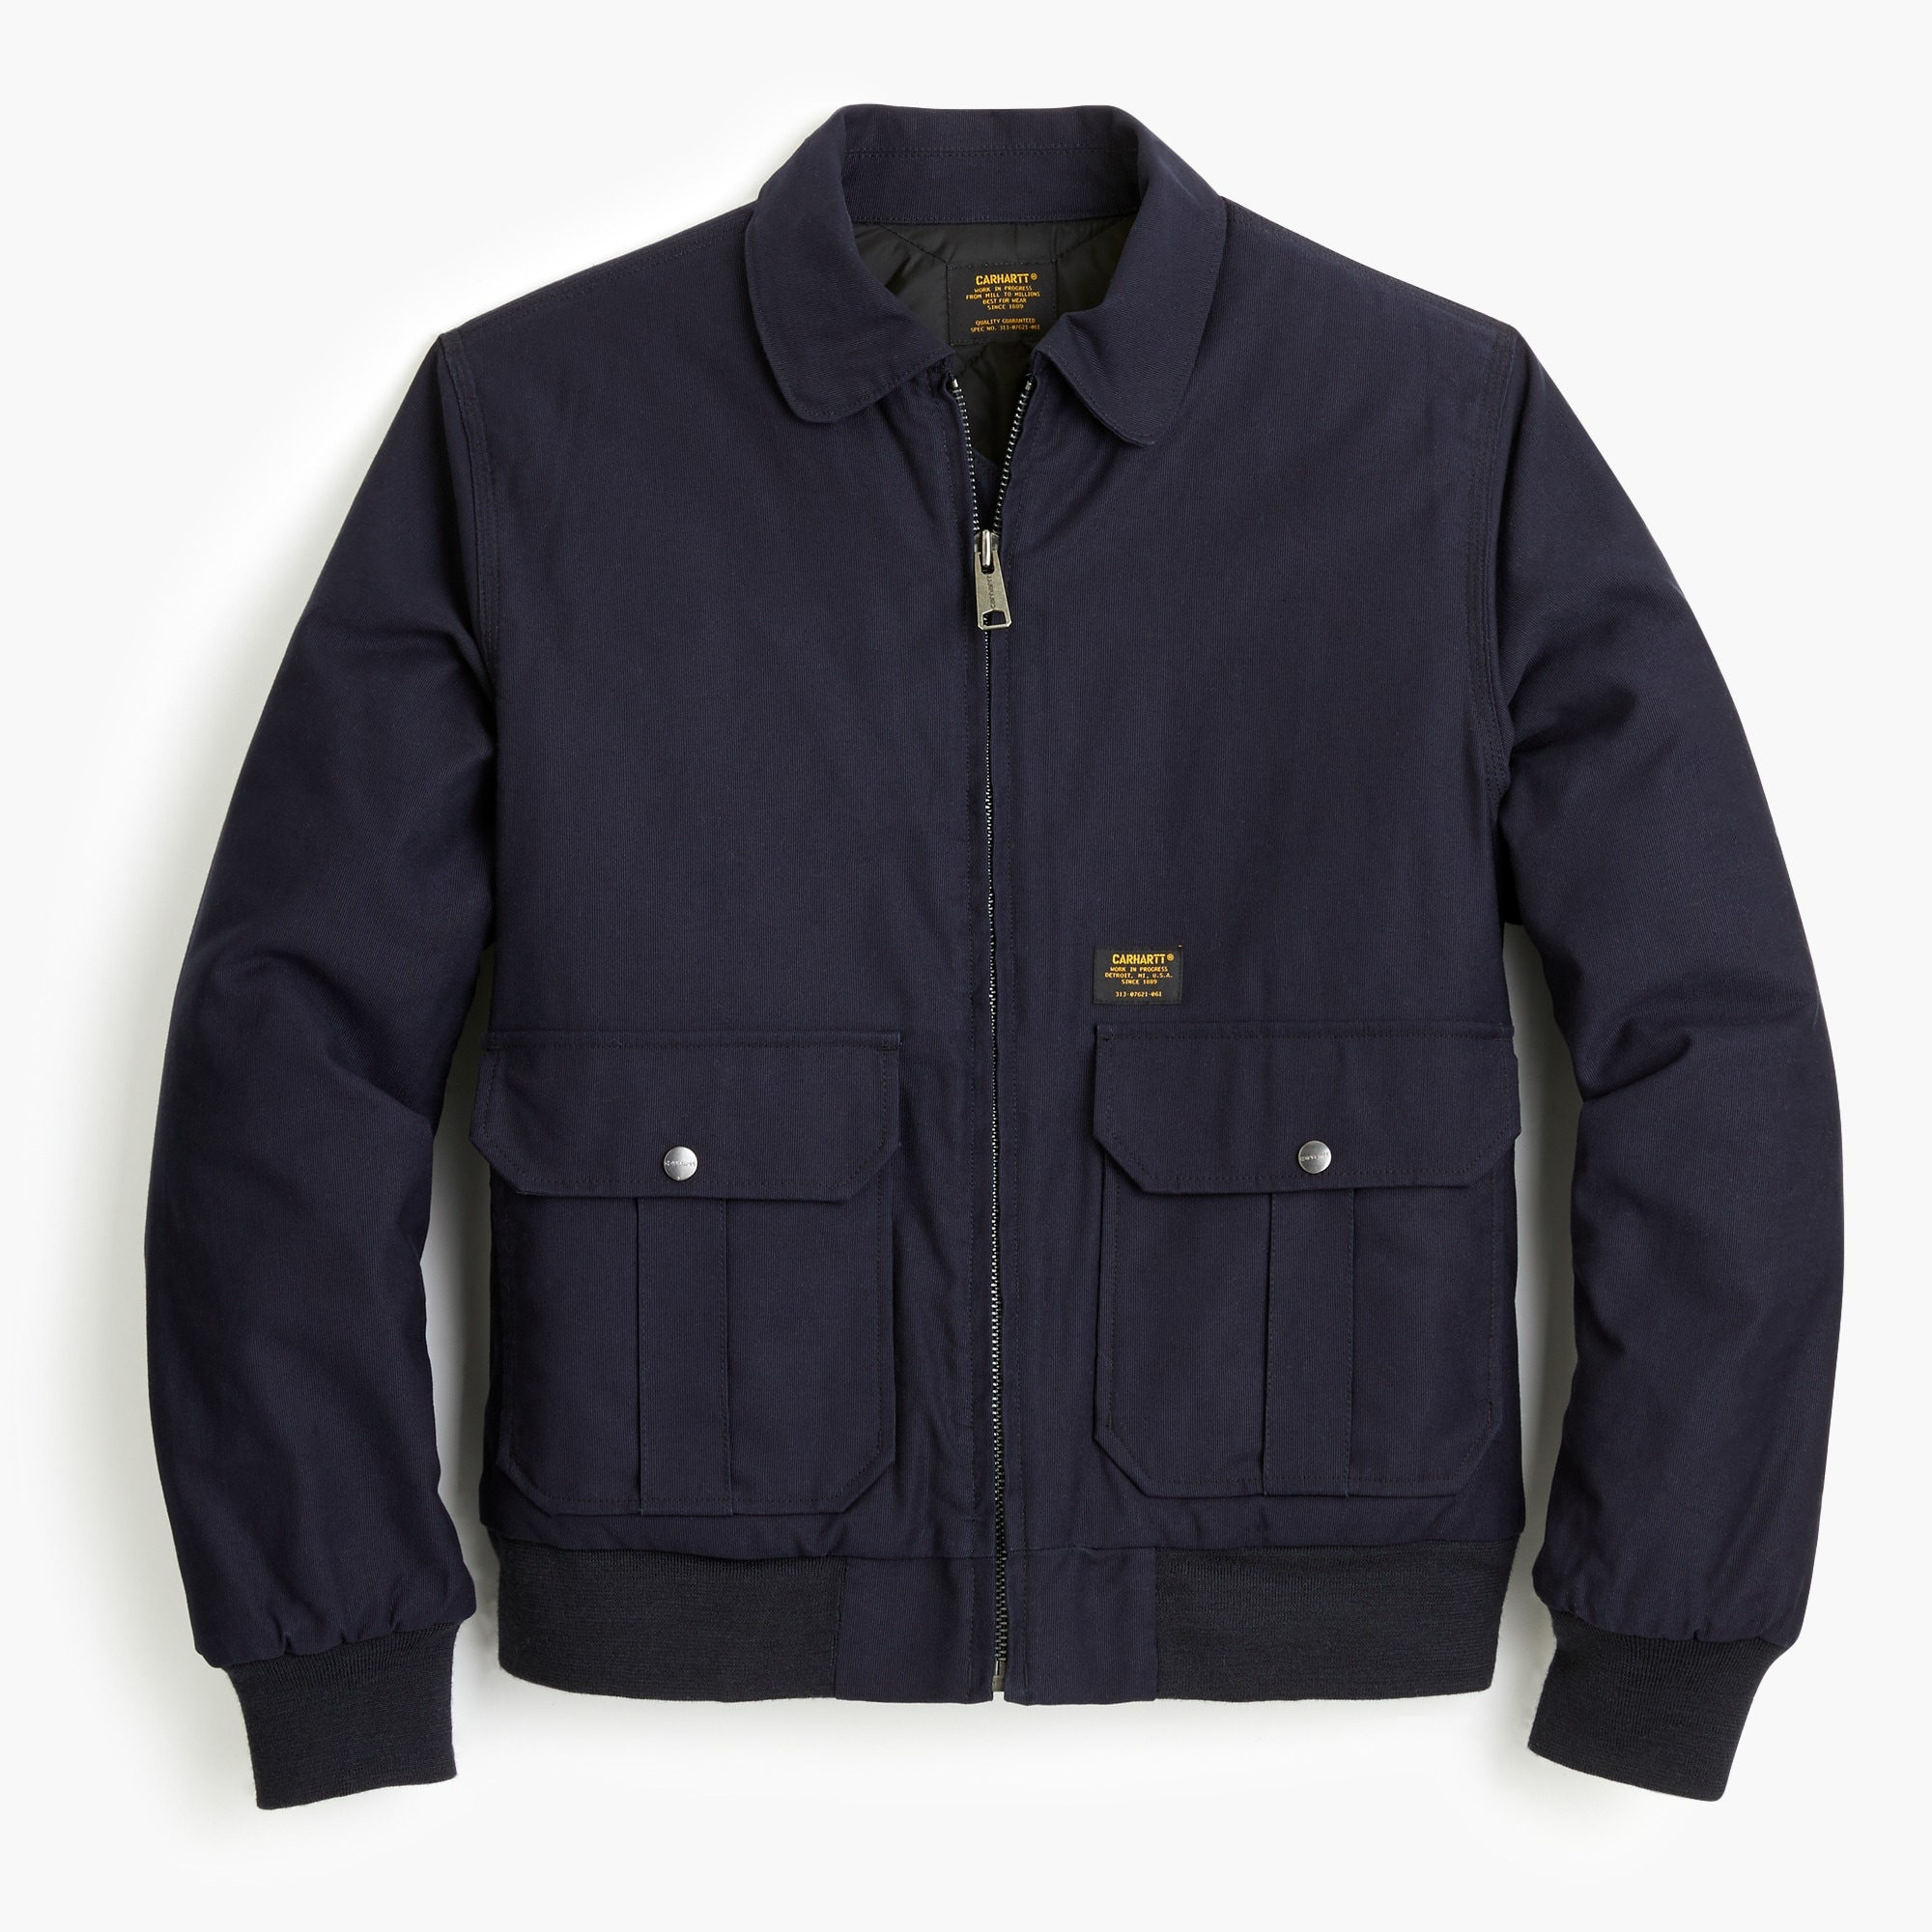 Image 2 for Carhartt® Work In Progress aviator jacket